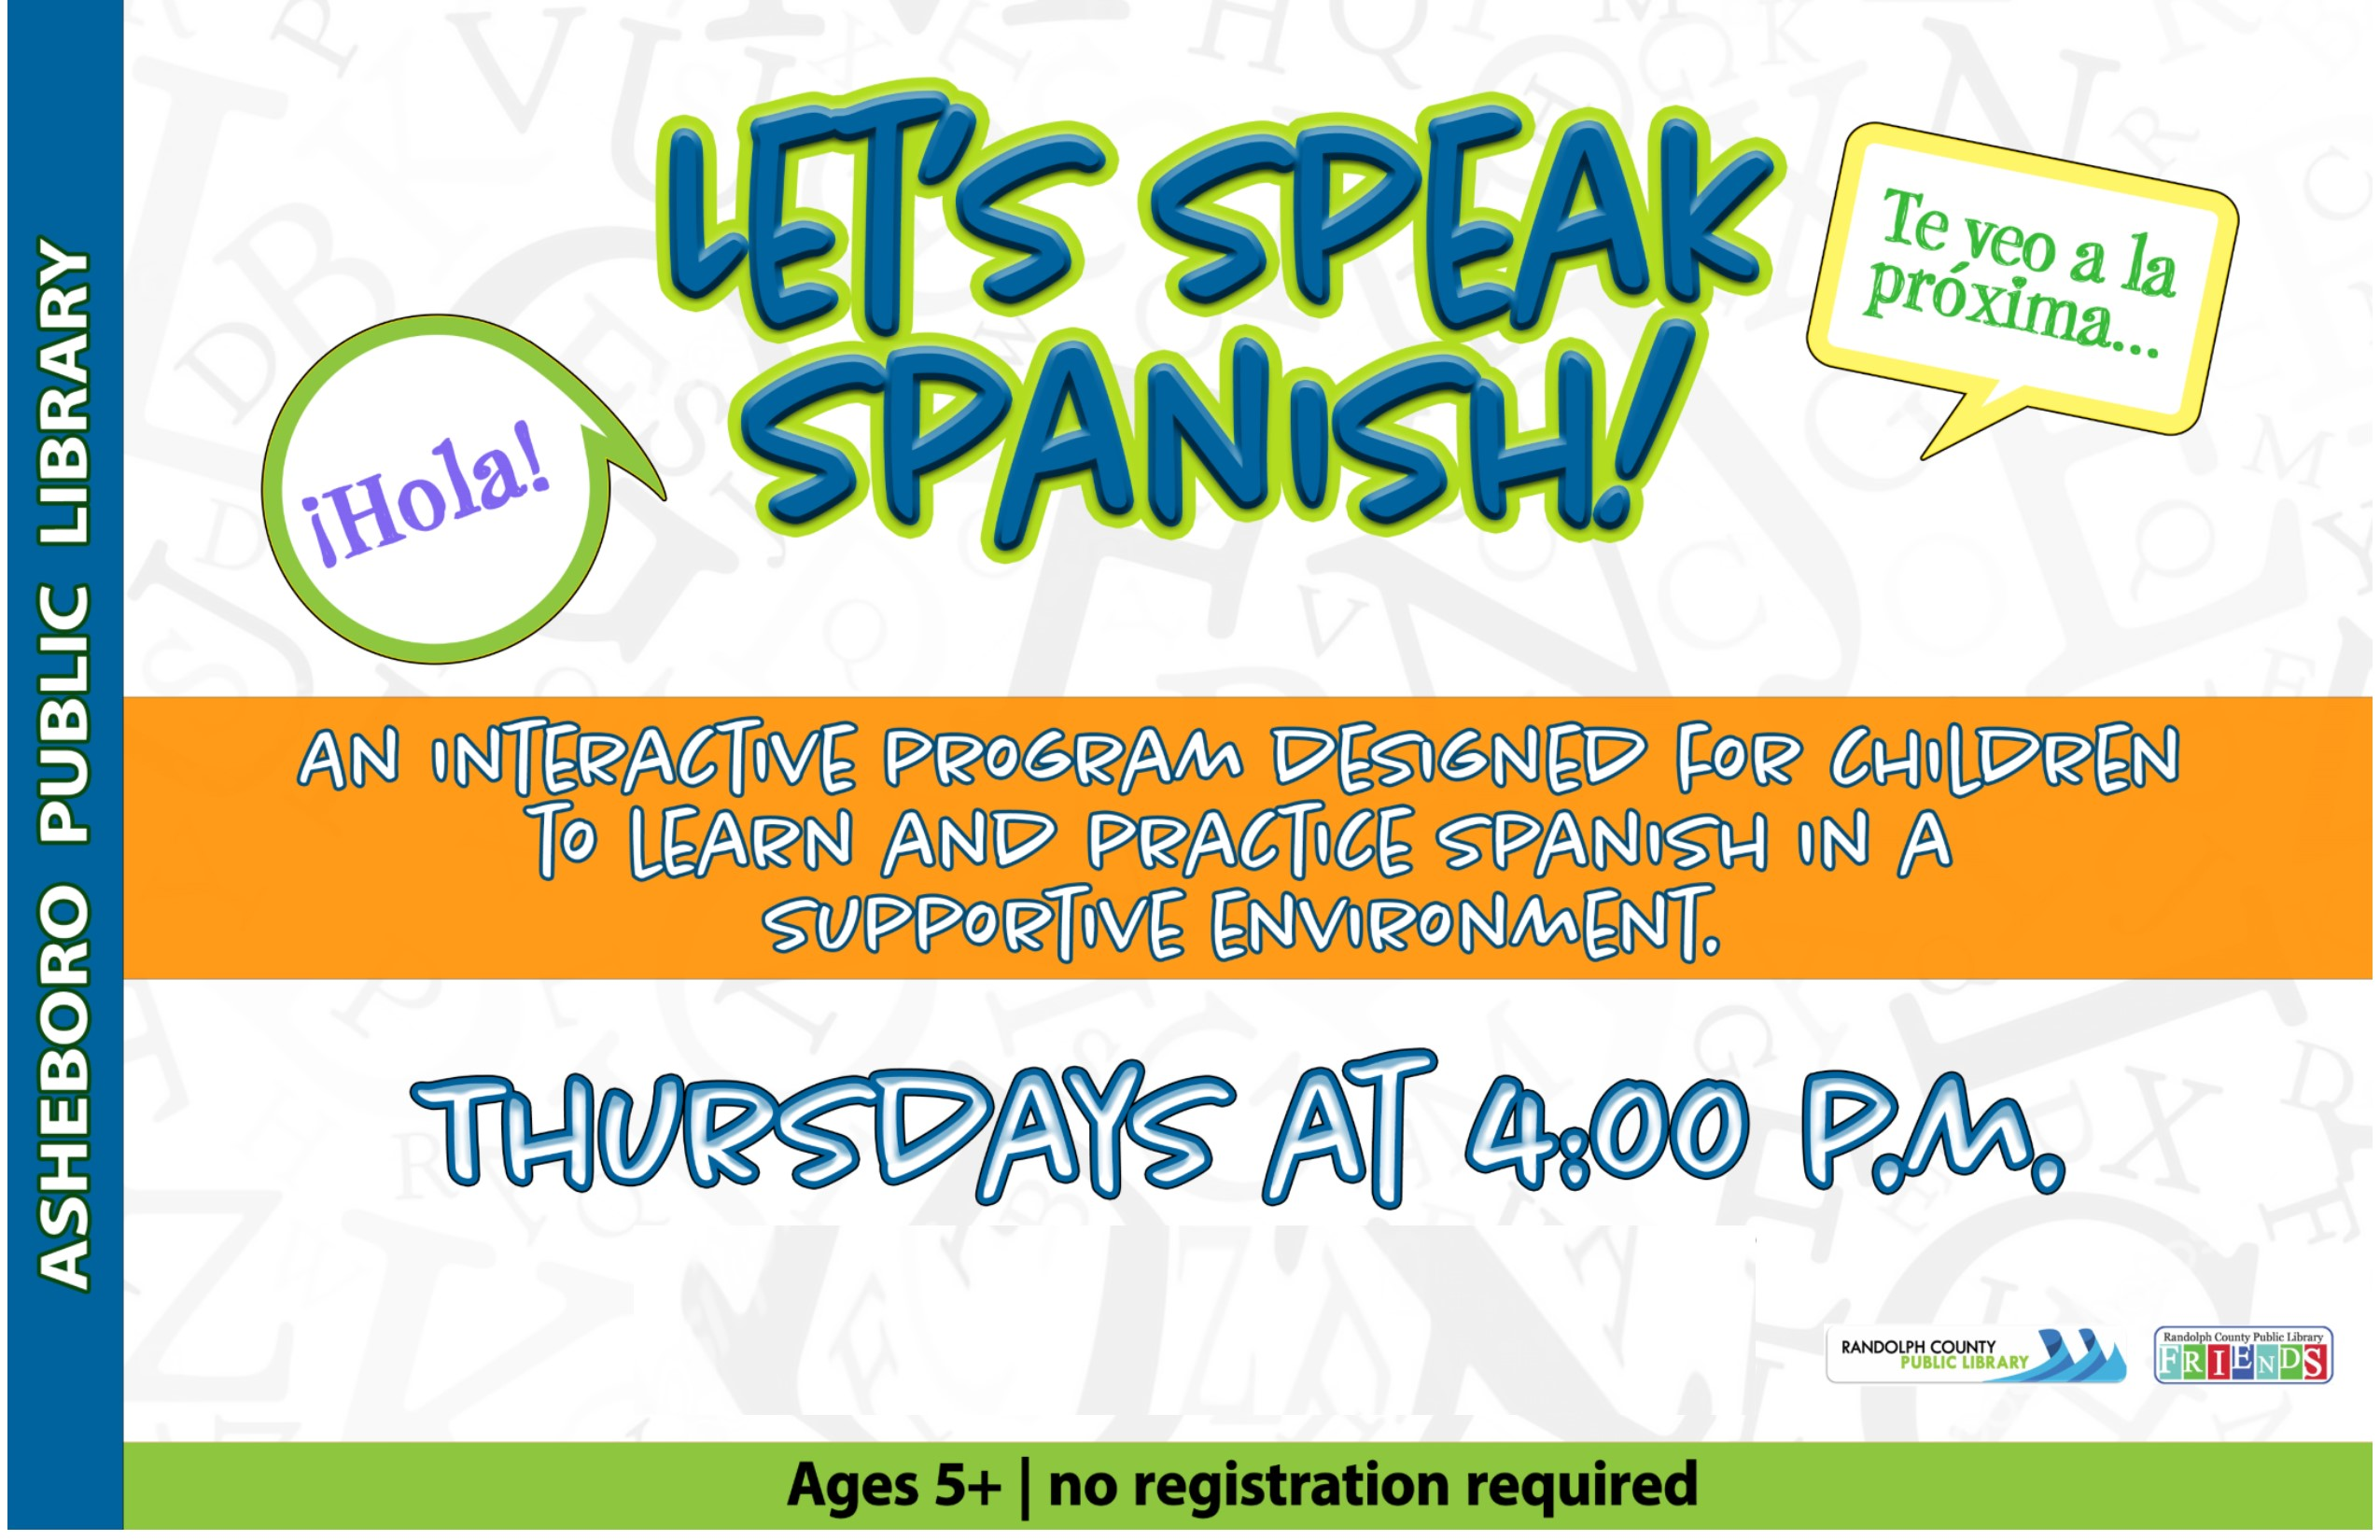 An interactive program designed for kids to learn and practice Spanish at the Asheboro Children's Room on Thursdays at 4pm! FREE